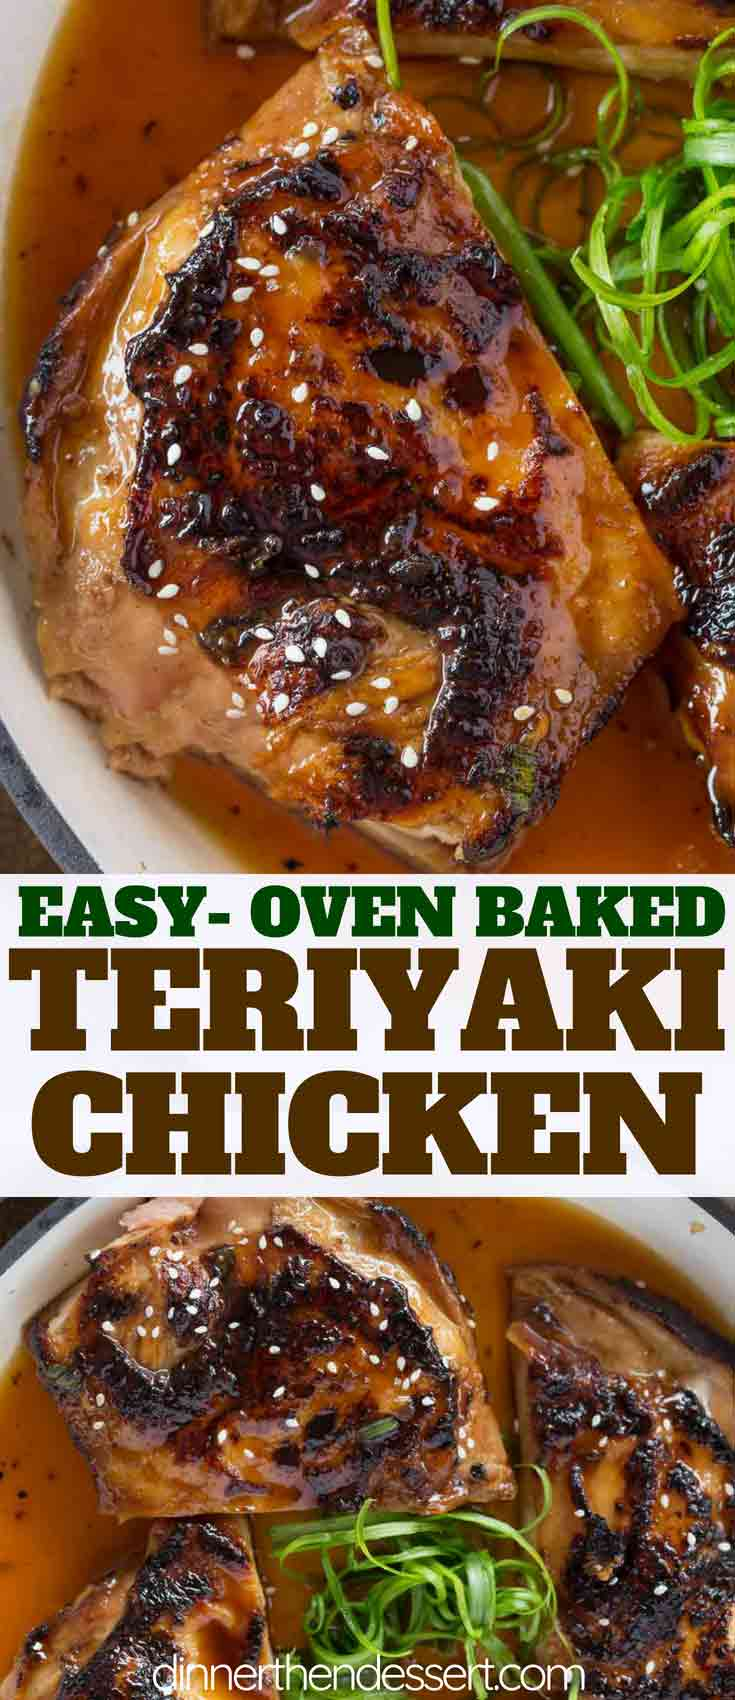 Baked Teriyaki Chicken Dinner Then Dessert